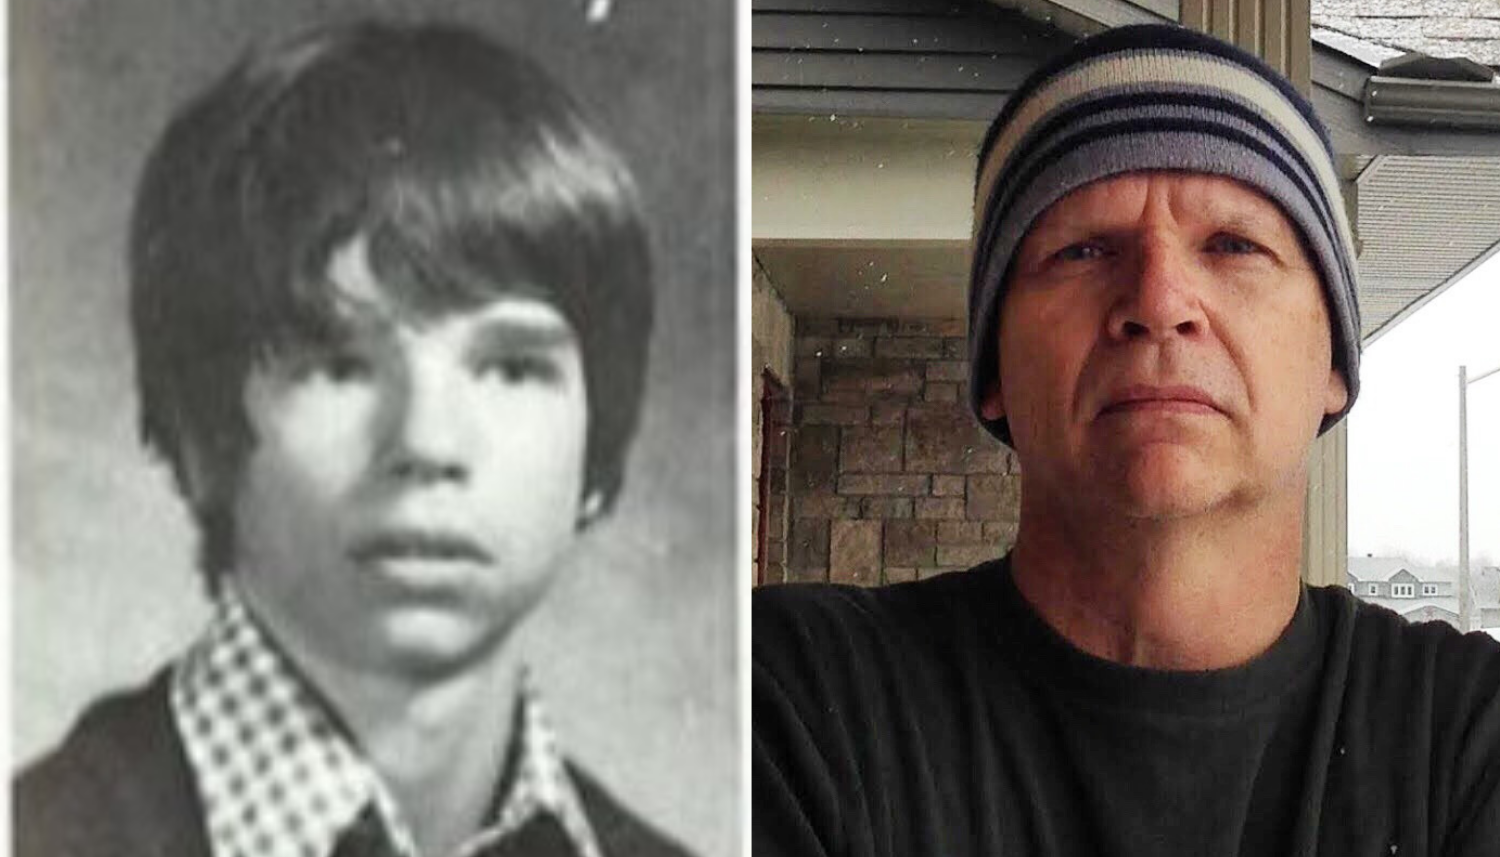 From left, John Cattell's yearbook photo from 1977, and a more recent photo of Cattell. (Submitted)